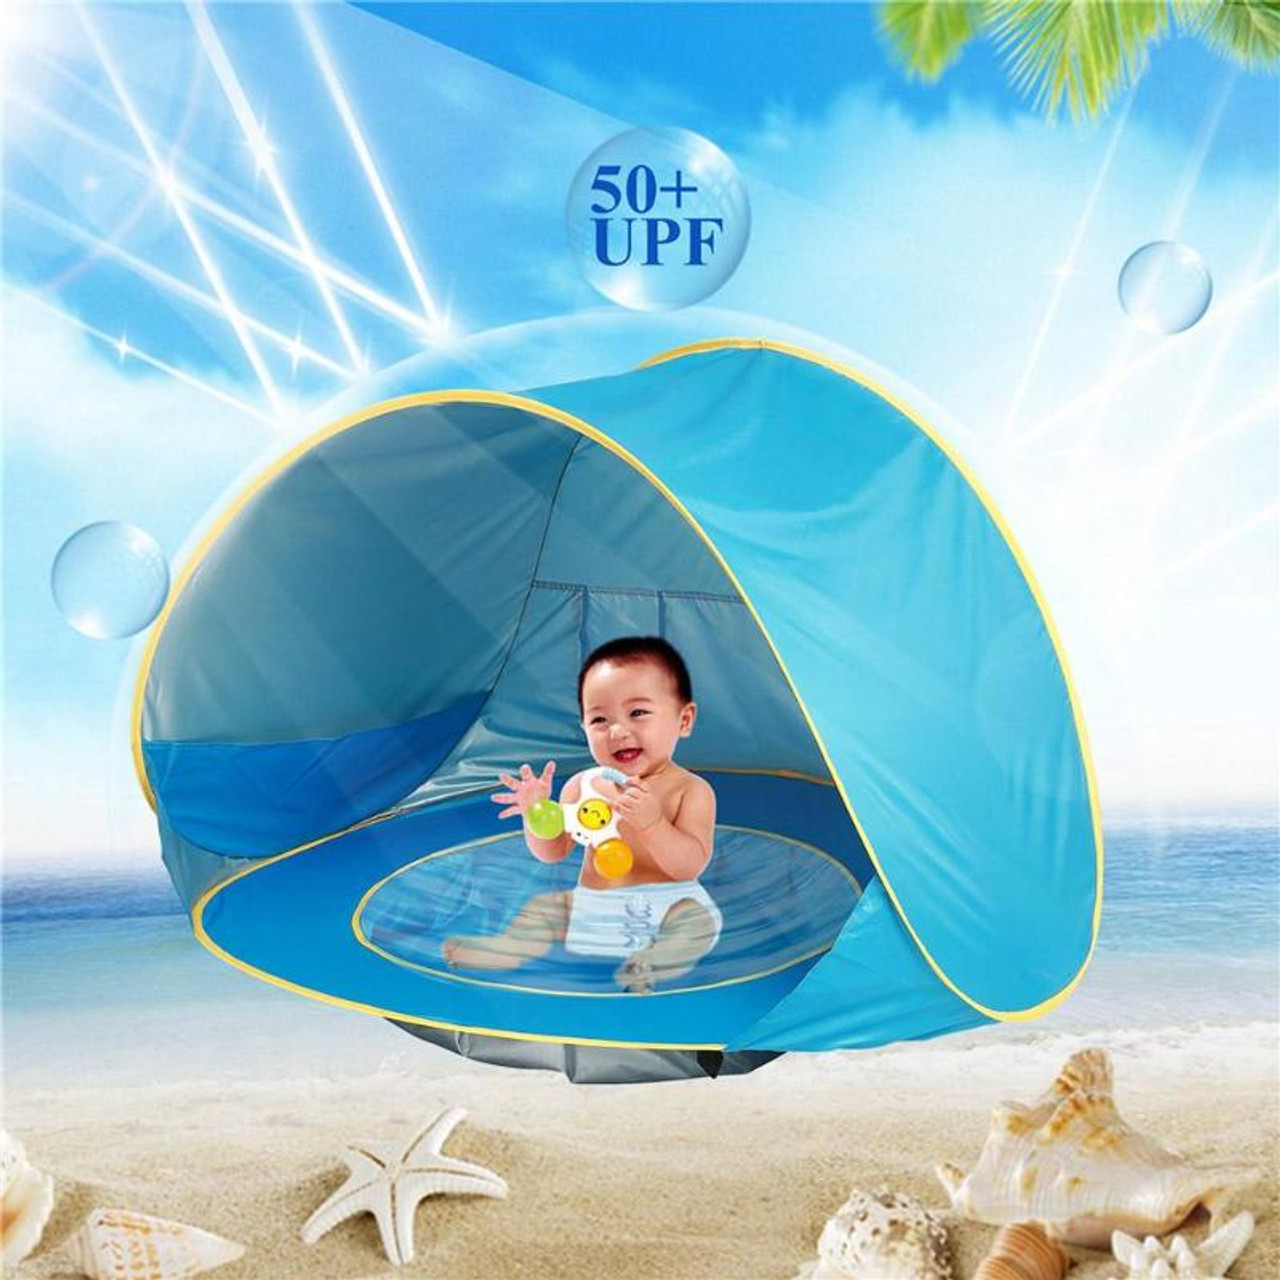 Just Baby Beach Tent Uv-protecting Sunshelter Children Toys Small House Waterproof Pop Up Awning Tent Portable Ball Pool Kids Tents Outdoor Fun & Sports